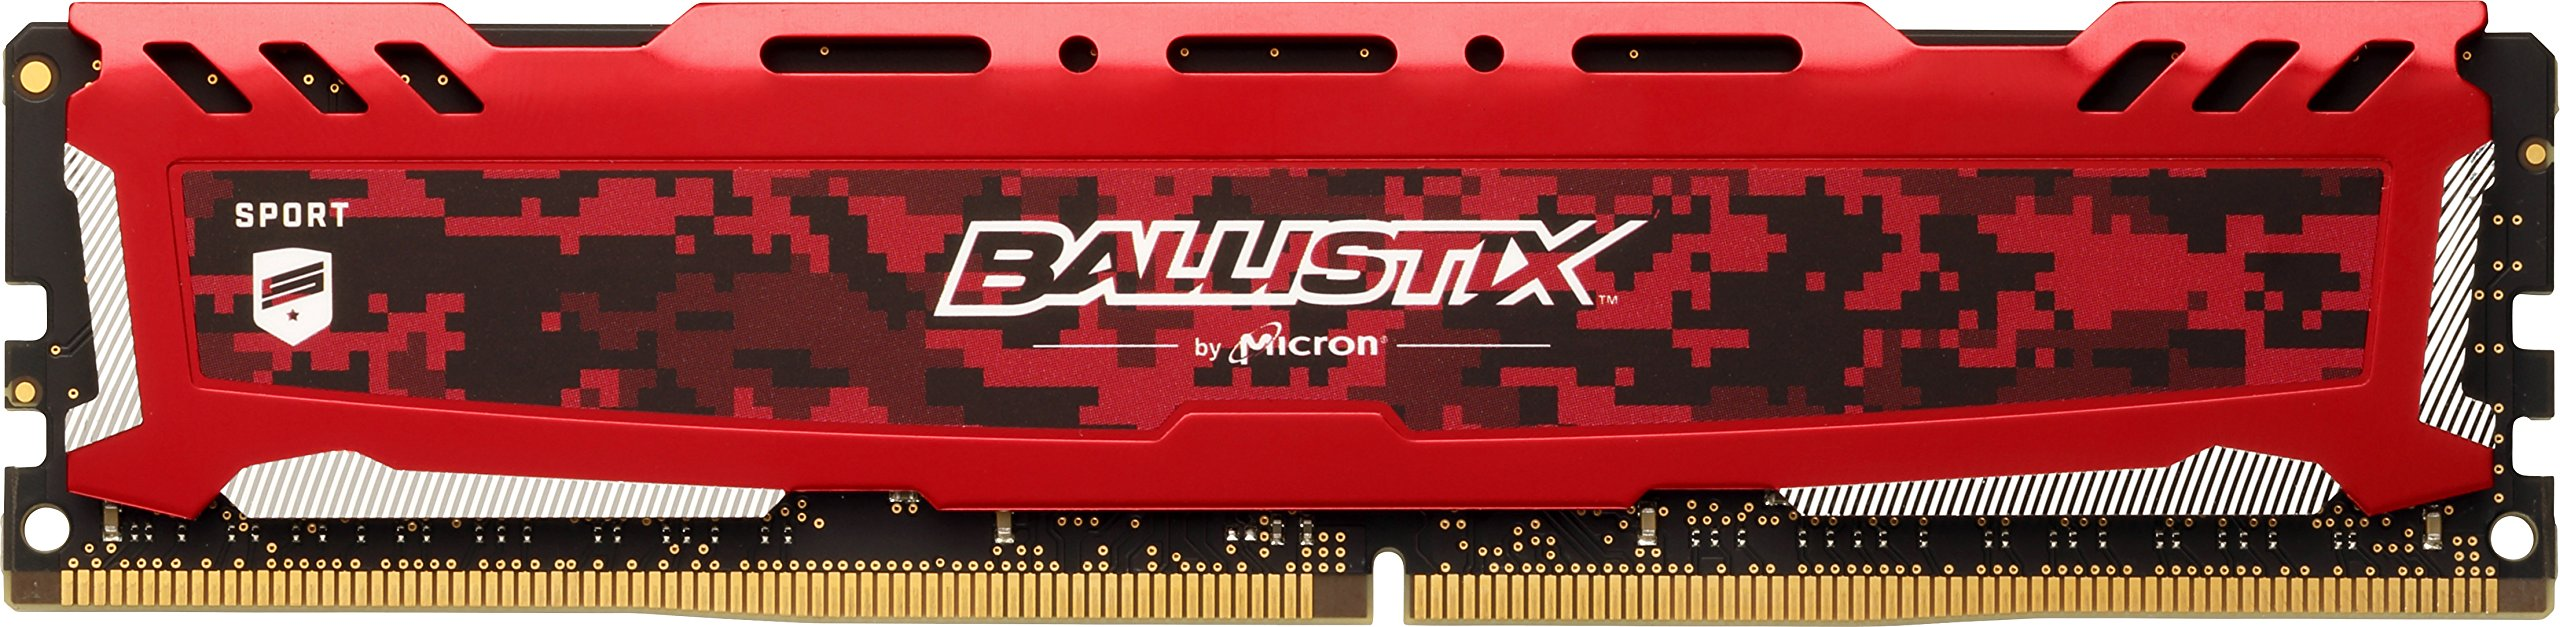 Ballistix Sport LT 8GB Single DDR4 2666 MT/s (PC4-21300) DR x8 DIMM 288-Pin Memory - BLS8G4D26BFSE (Red)